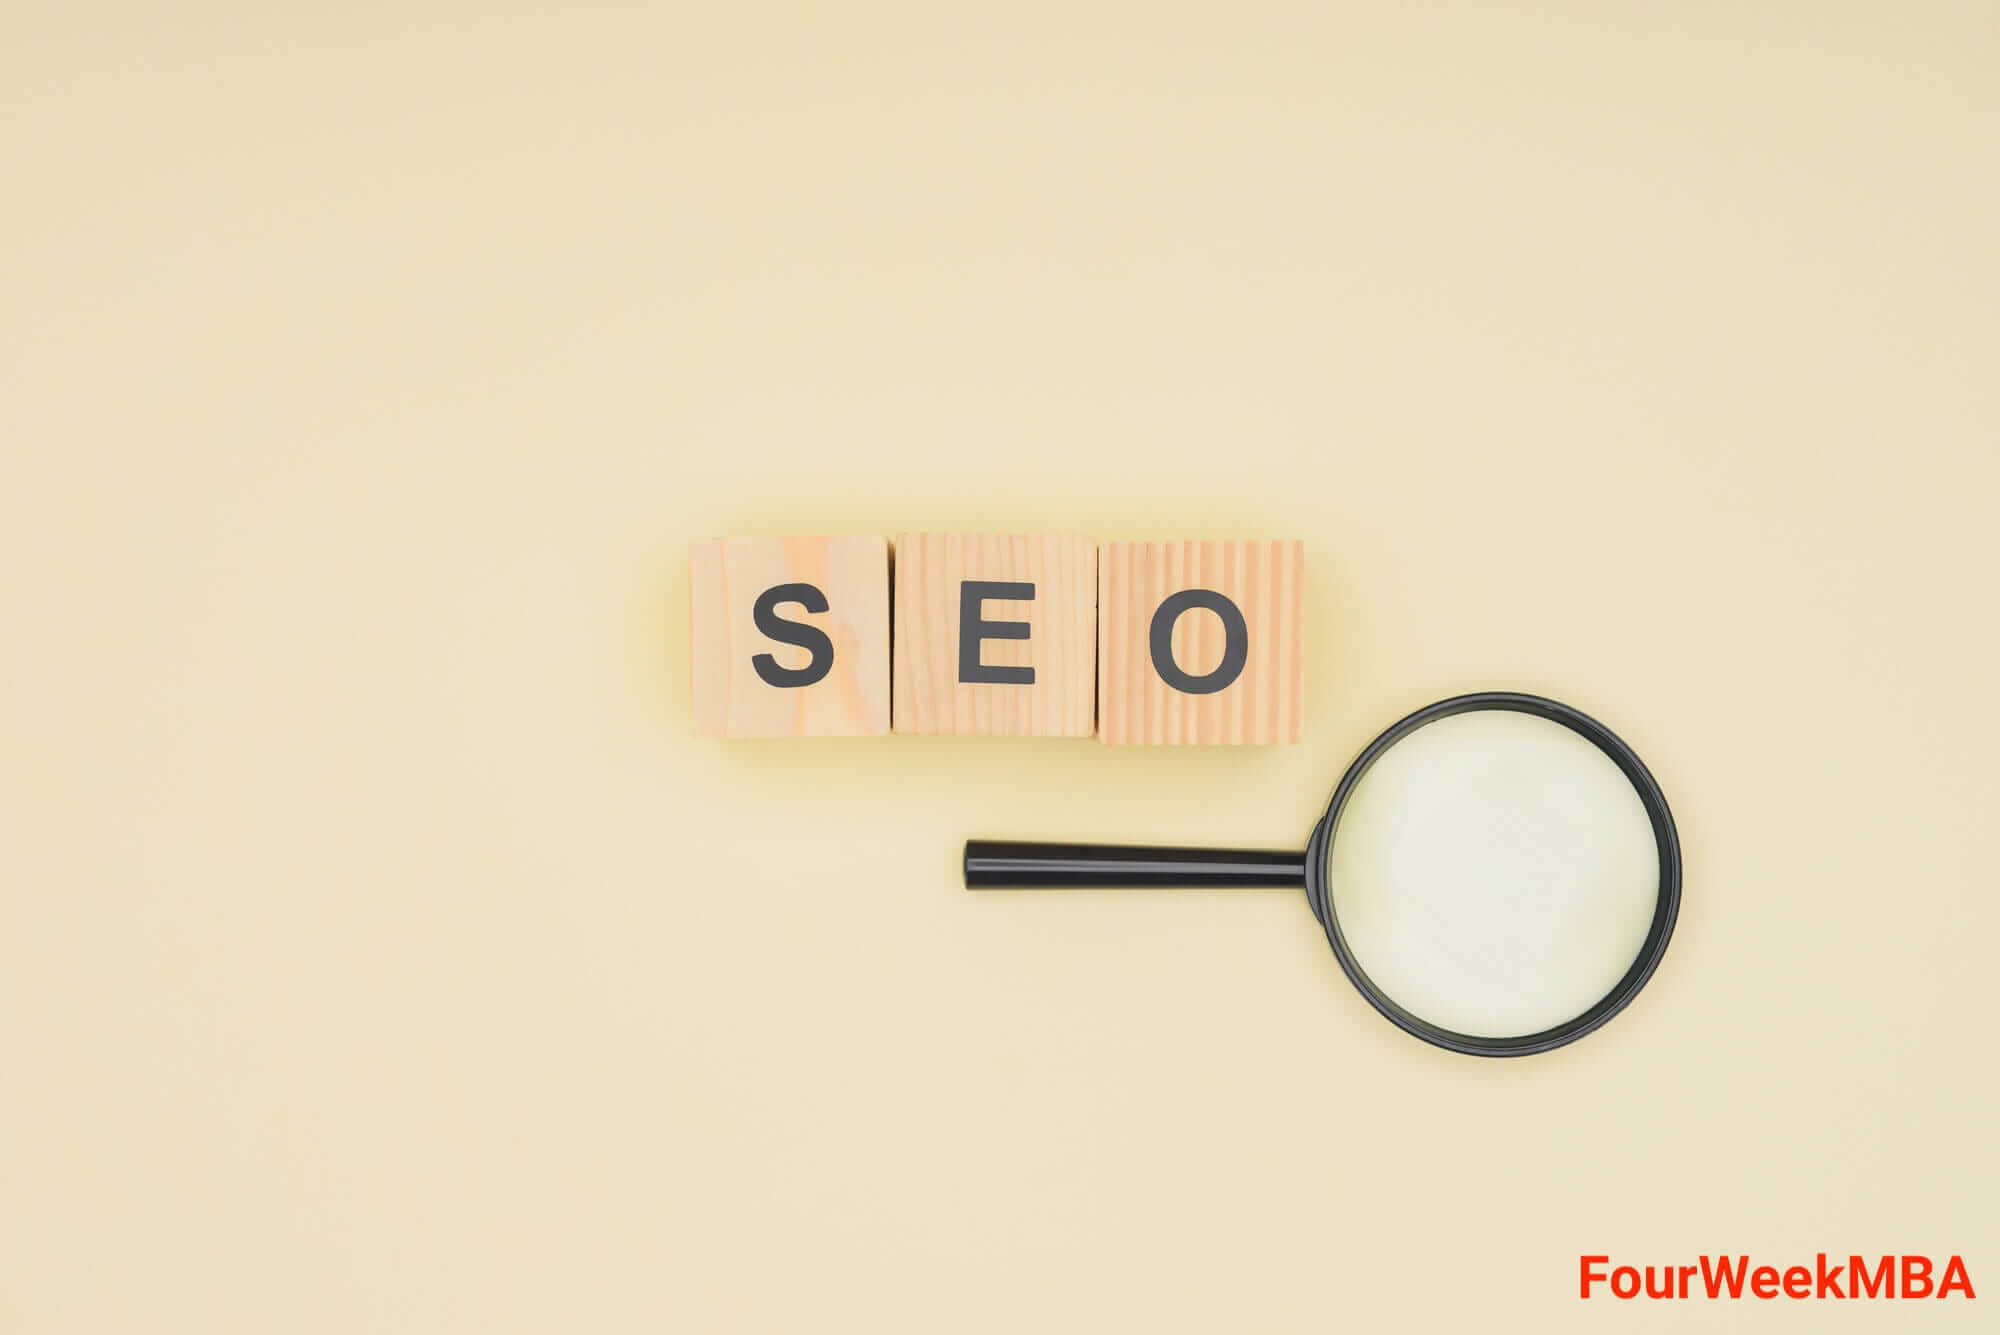 6 Things You Need To Know Before Investing In SEO